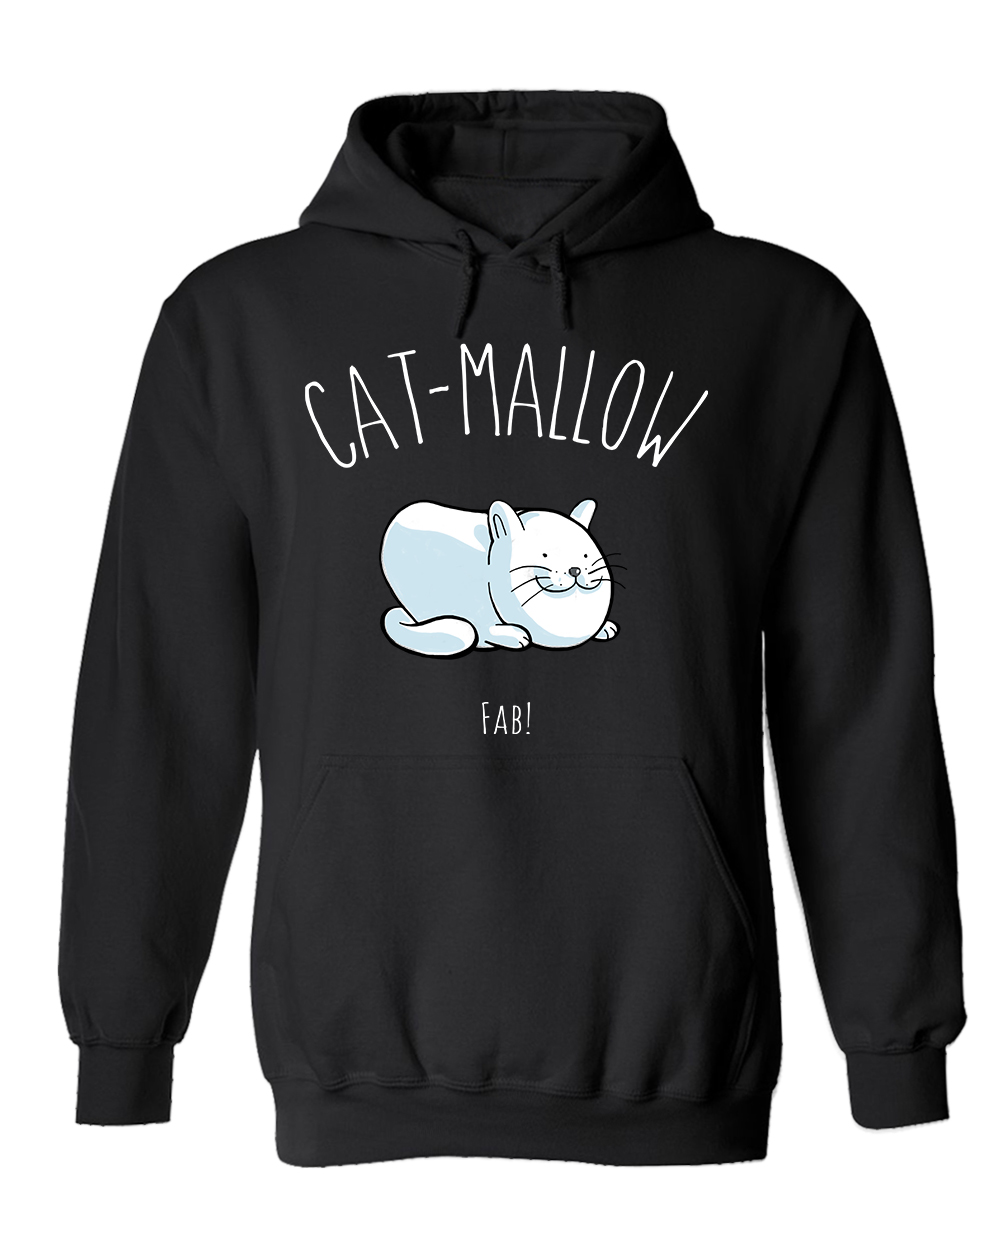 0ab18cb6213 Catmallow - Pullover Hoodie on Storenvy